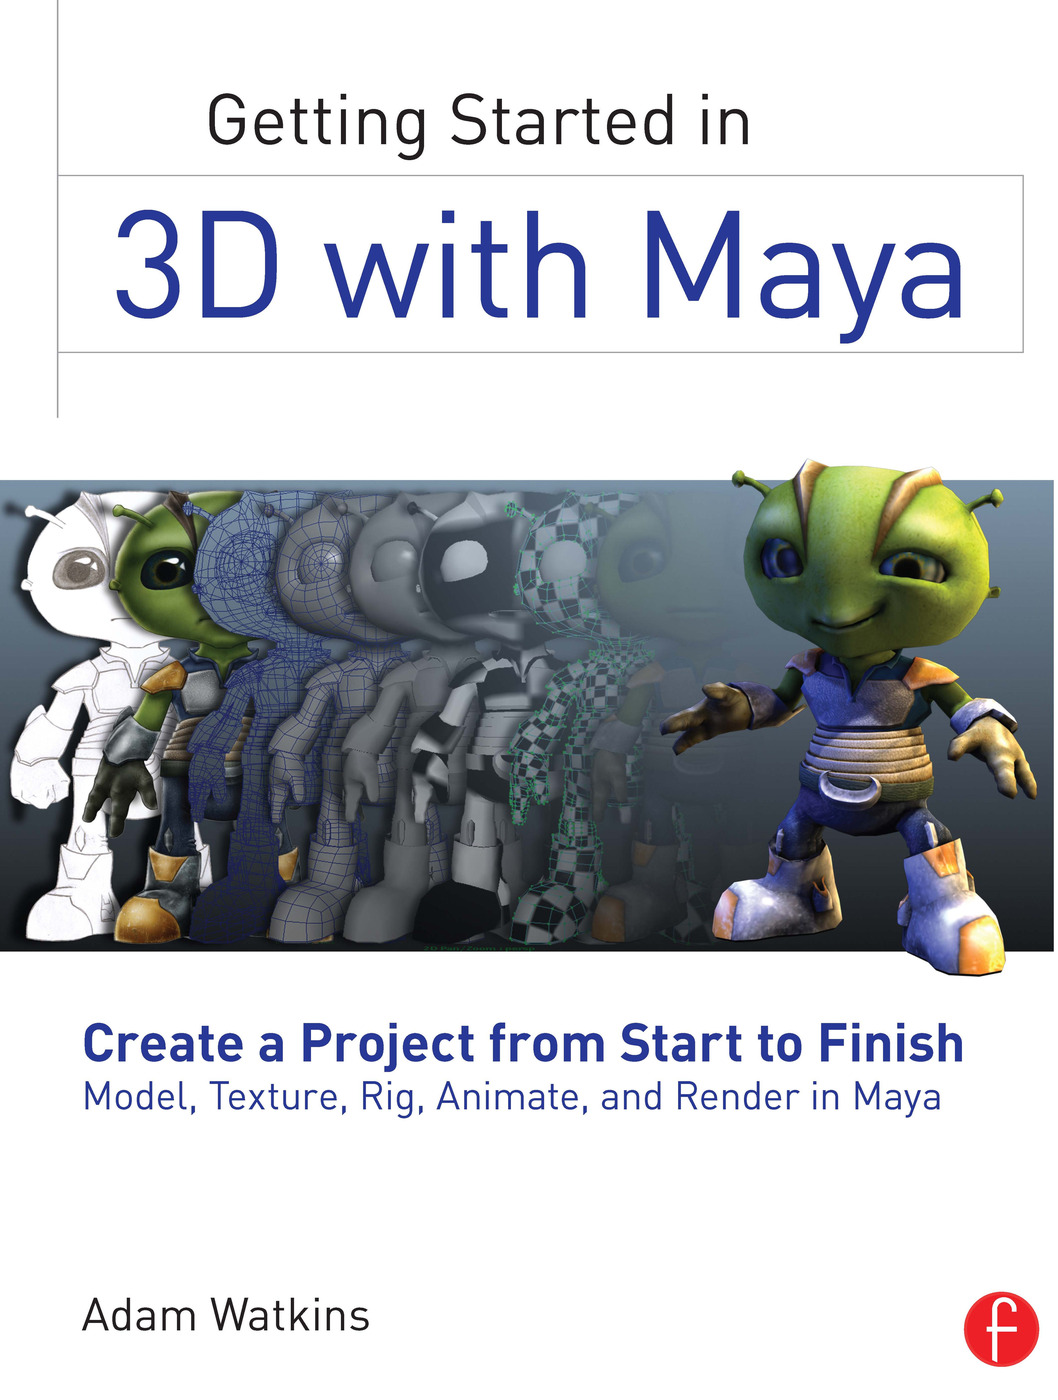 Getting Started in 3D with Maya: Create a Project from Start to Finish—Model, Texture, Rig, Animate, and Render in Maya (Paperback) book cover